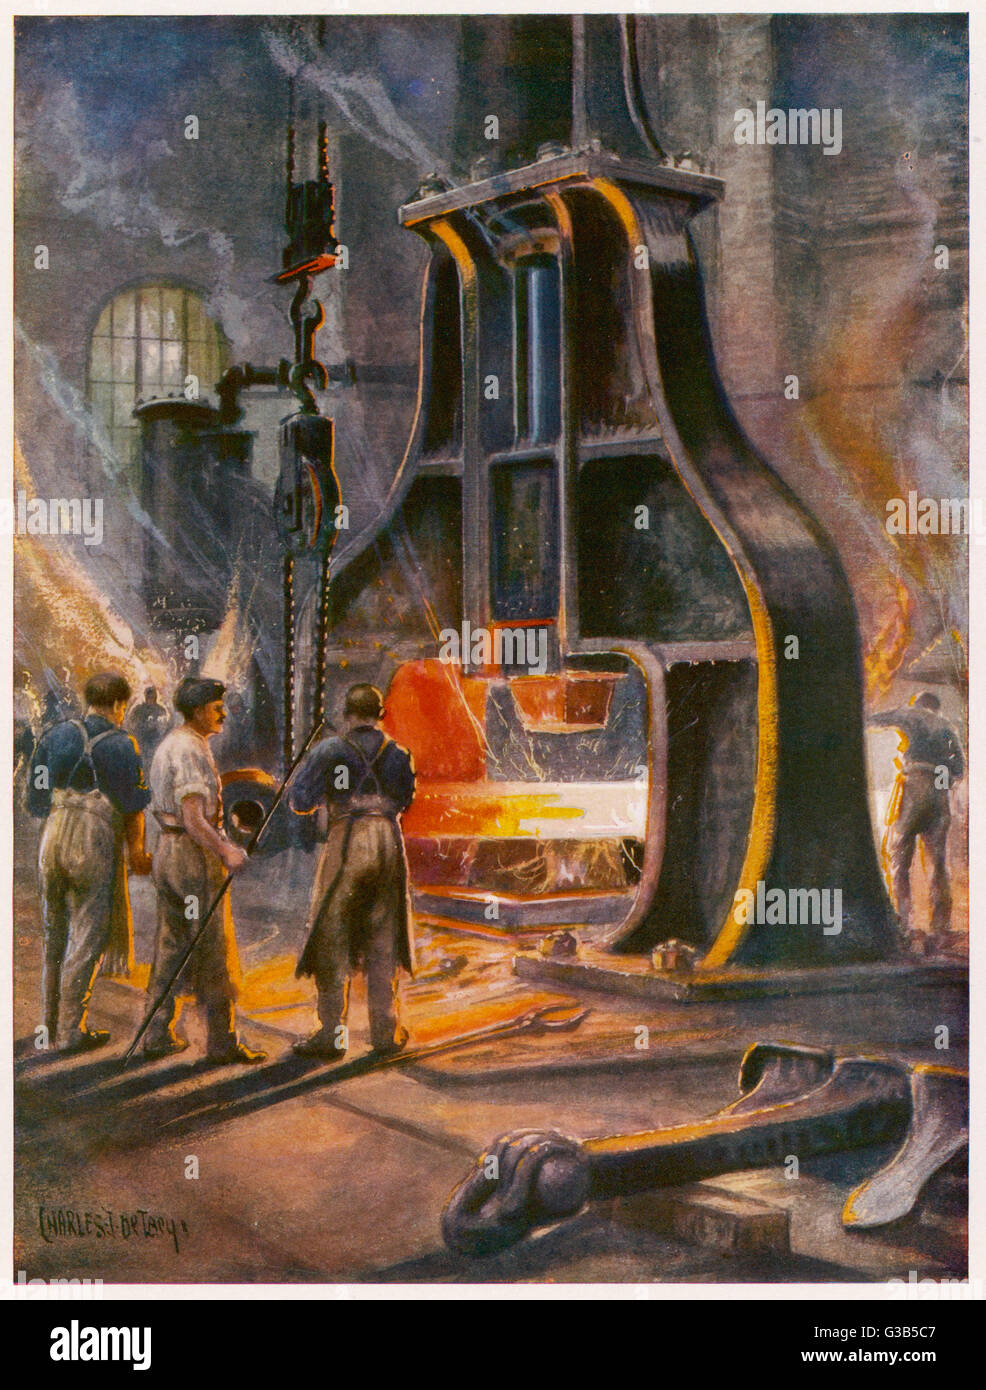 A steam hammer at work in a  British ironworks, making a  ship's anchor        Date: 1914-1918 - Stock Image